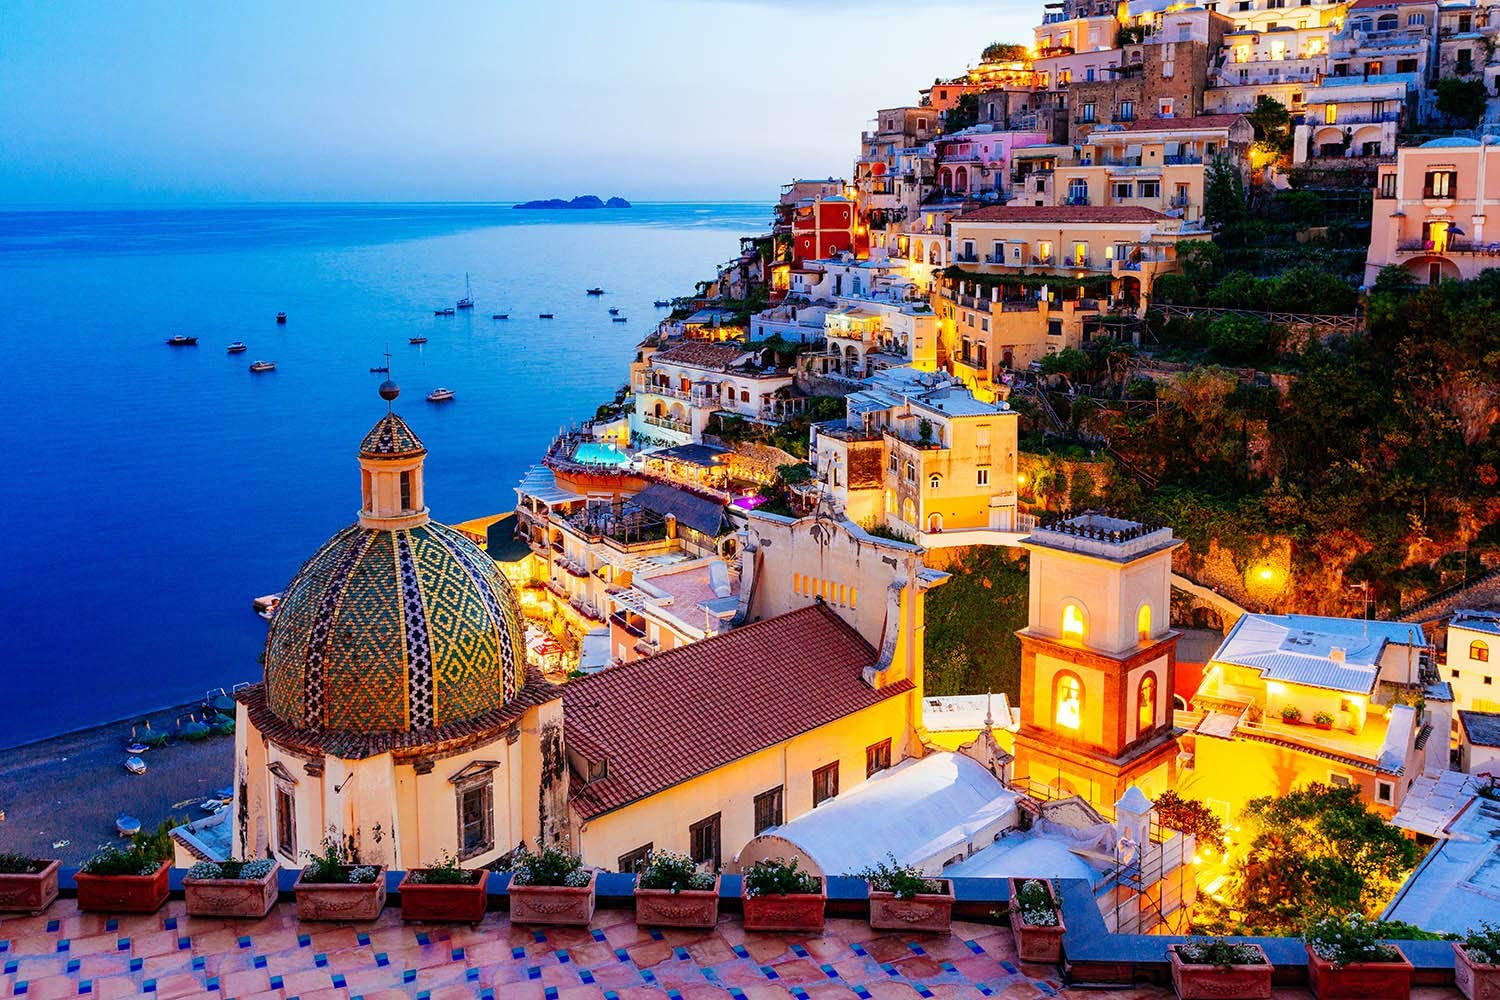 Jigsaw Puzzle 1000 Piece - Dreamy Positano - Signature Collection Twilight Sea Sight Large Puzzle Game Artwork for Adults Teens